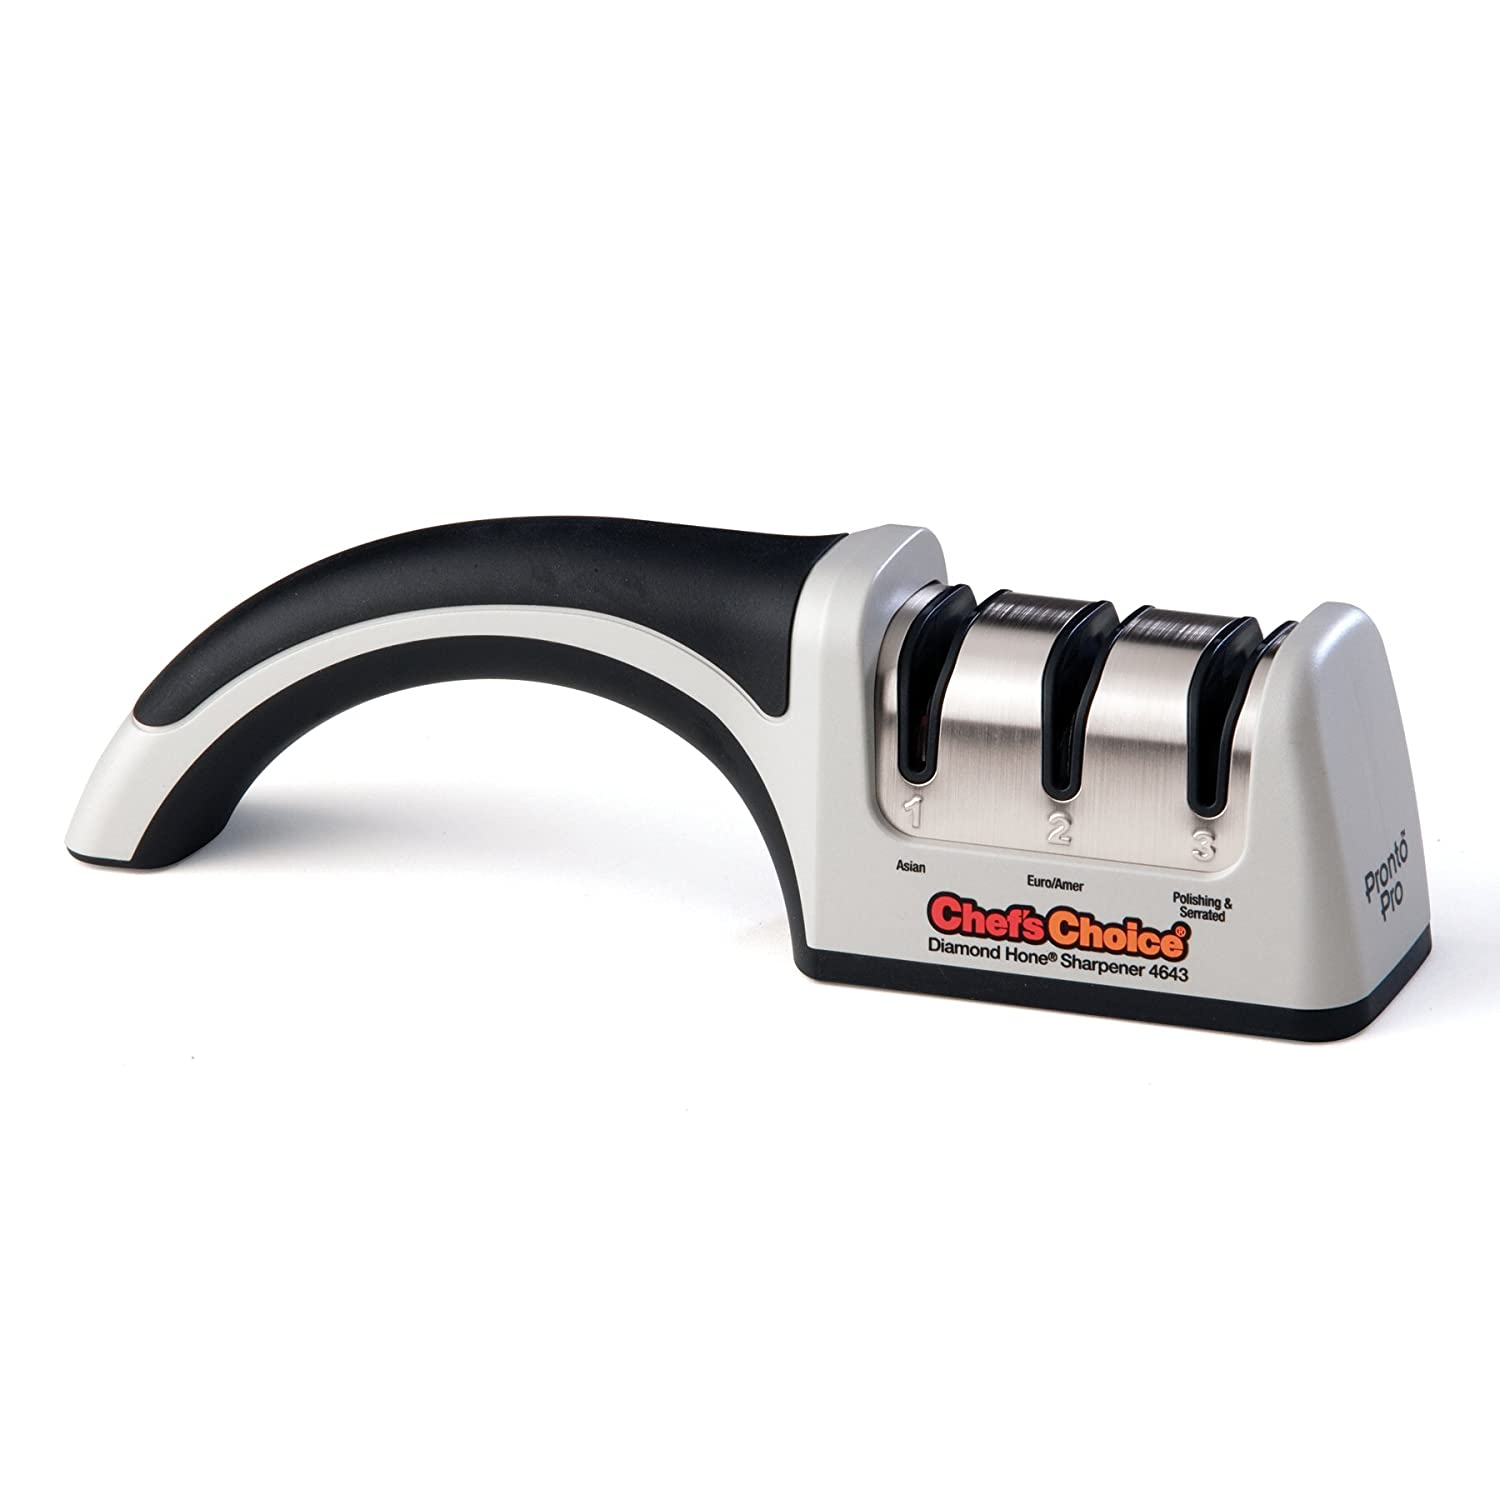 Best Knife Sharpener Reviews 2019: Top 5+ Recommended 4